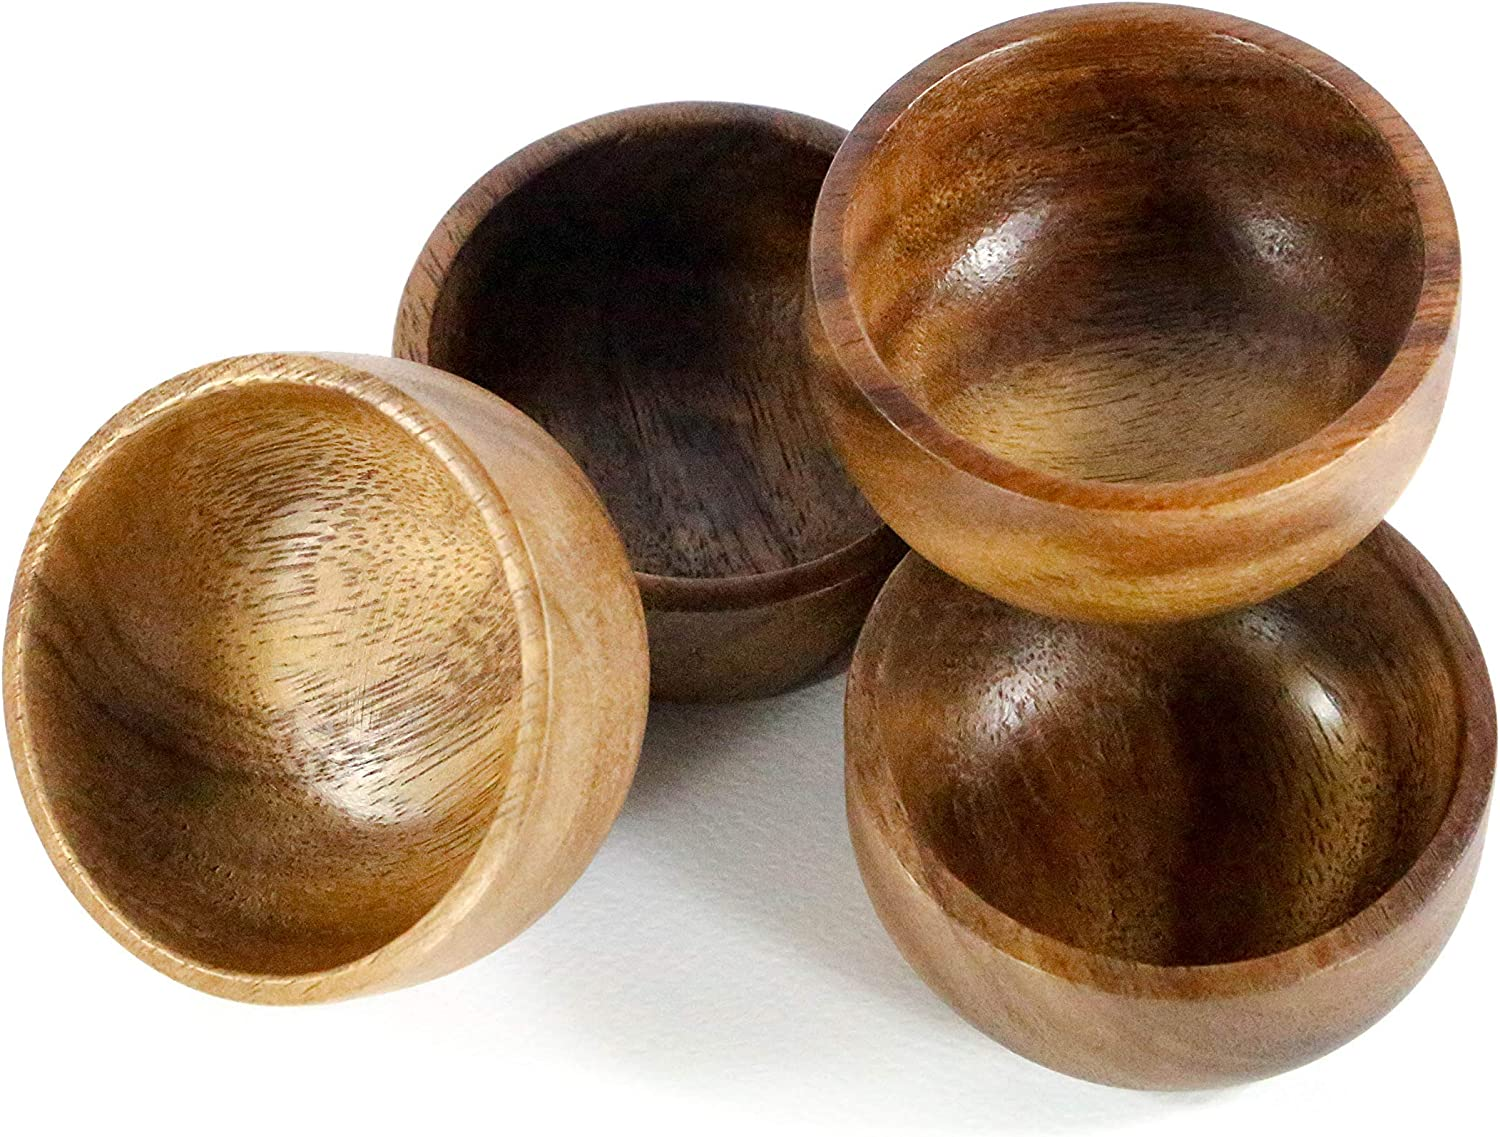 """Kevin Home Small Wooden Serving Bowl, fruits, candy, nuts, Dip Sauce, Appetizer, 4 Pieces Acacia Small bowl 3"""" Diameter x 1.4"""" Height"""